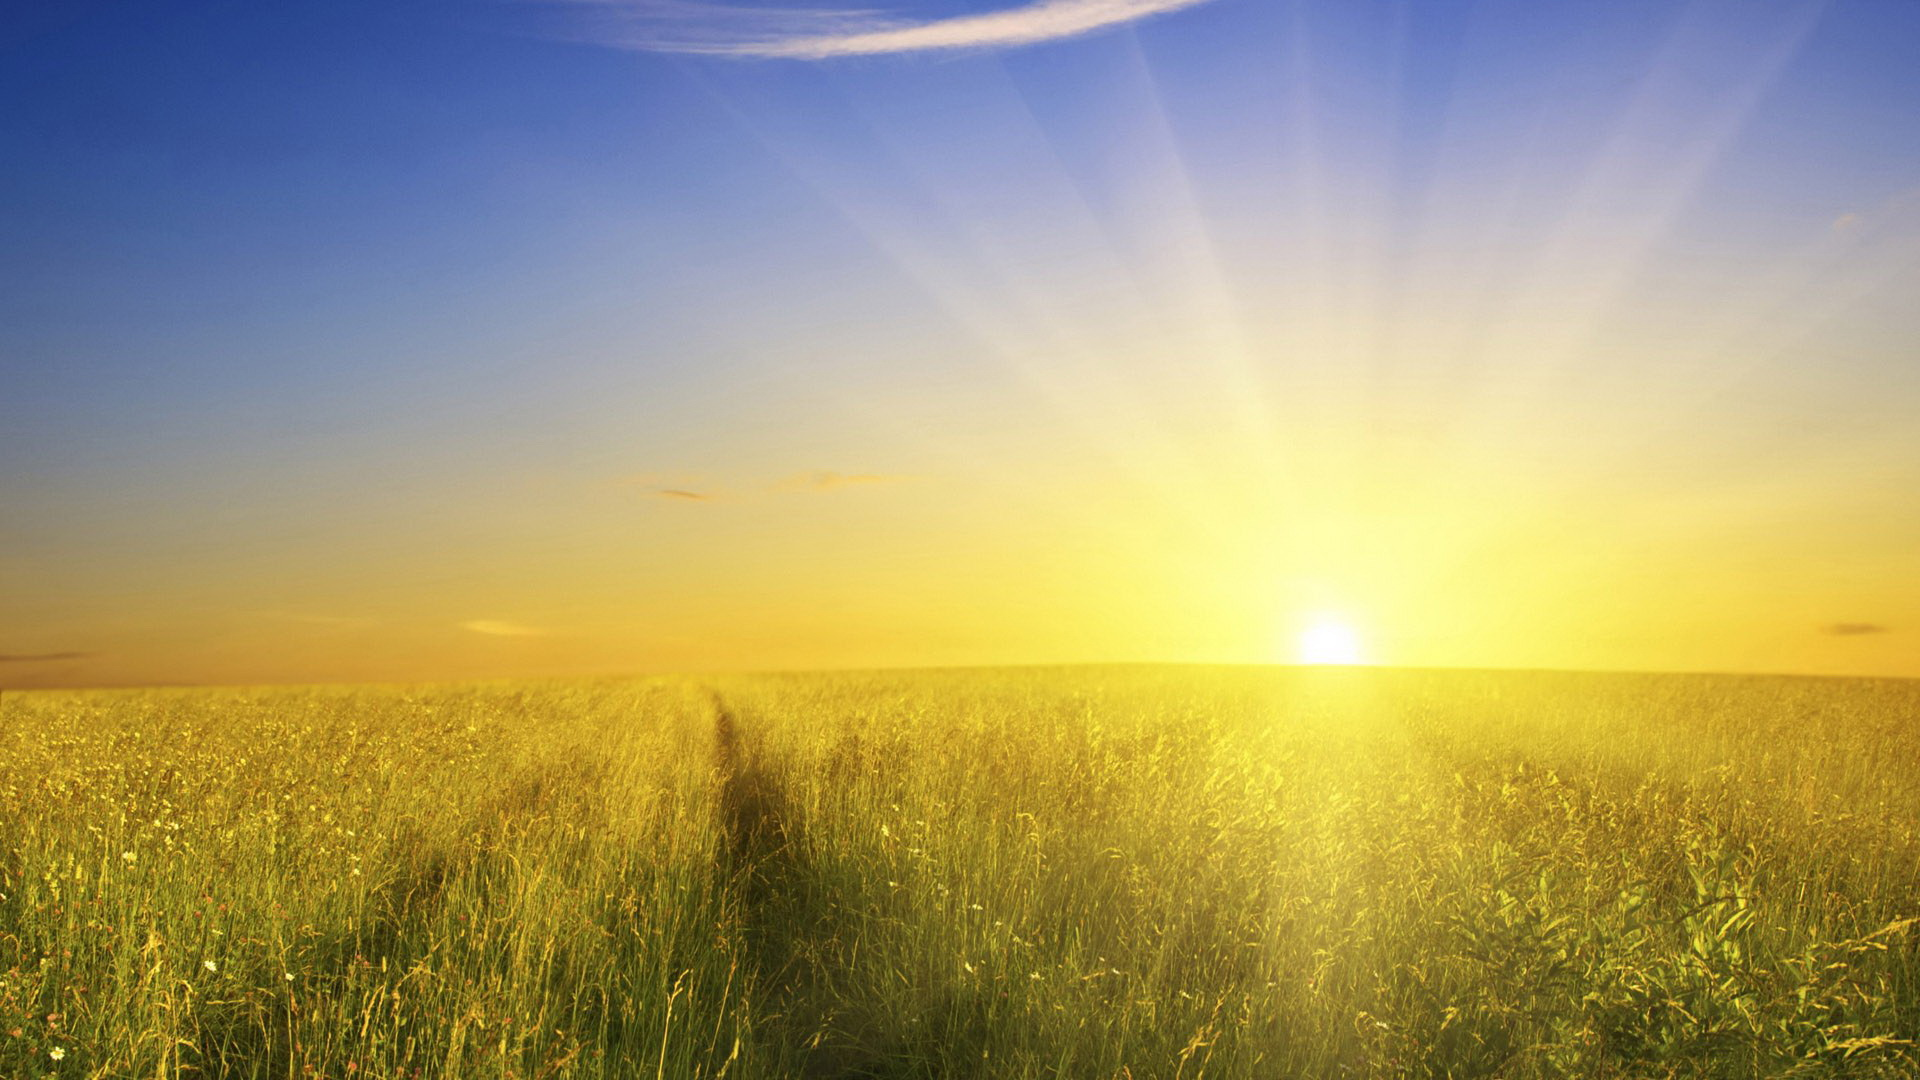 Free Rural Scene Pics - The Rising Sun and the Blue Sky, Wheats Will Soon be Ripe with Them 1920X1080 free wallpaper download